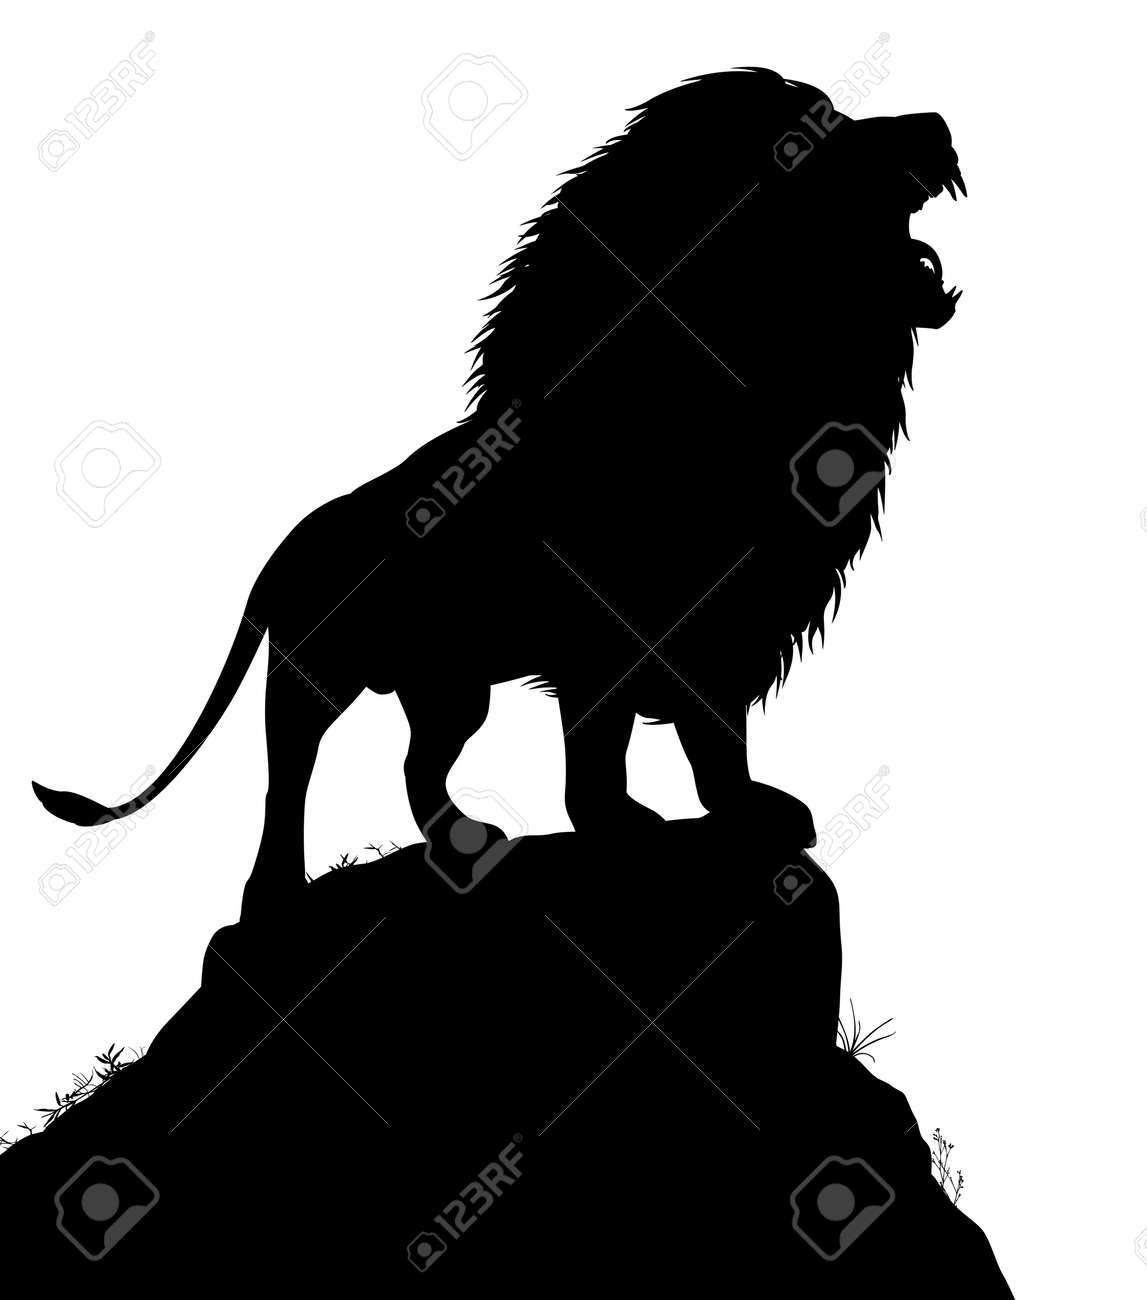 Editable vector silhouette of a roaring male lion standing on a rocky outcrop with lion as a separate object - 30030580